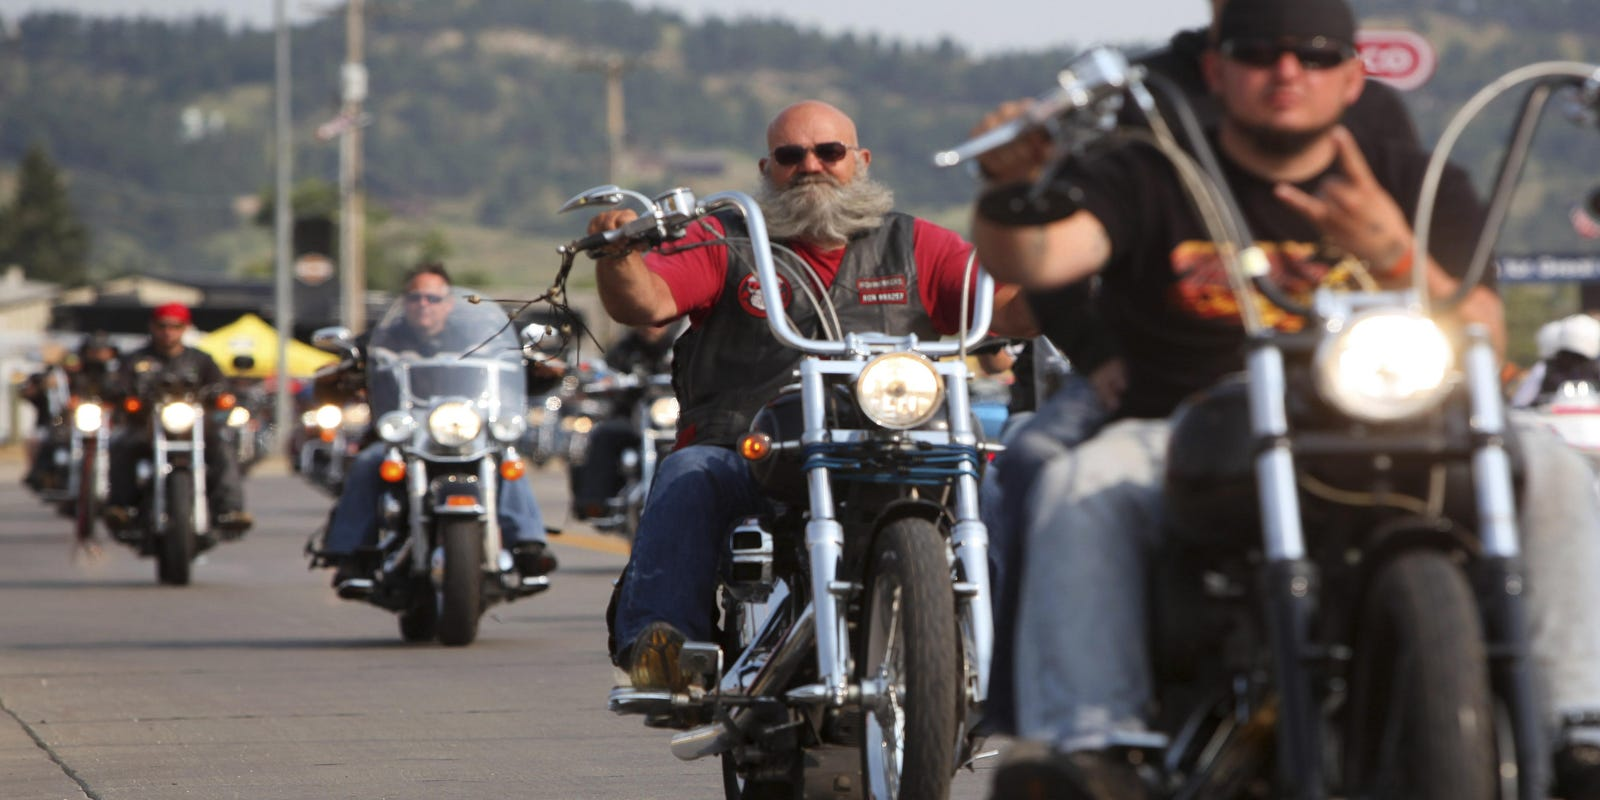 Record crowd expected for 75th Sturgis Motorcycle Rally